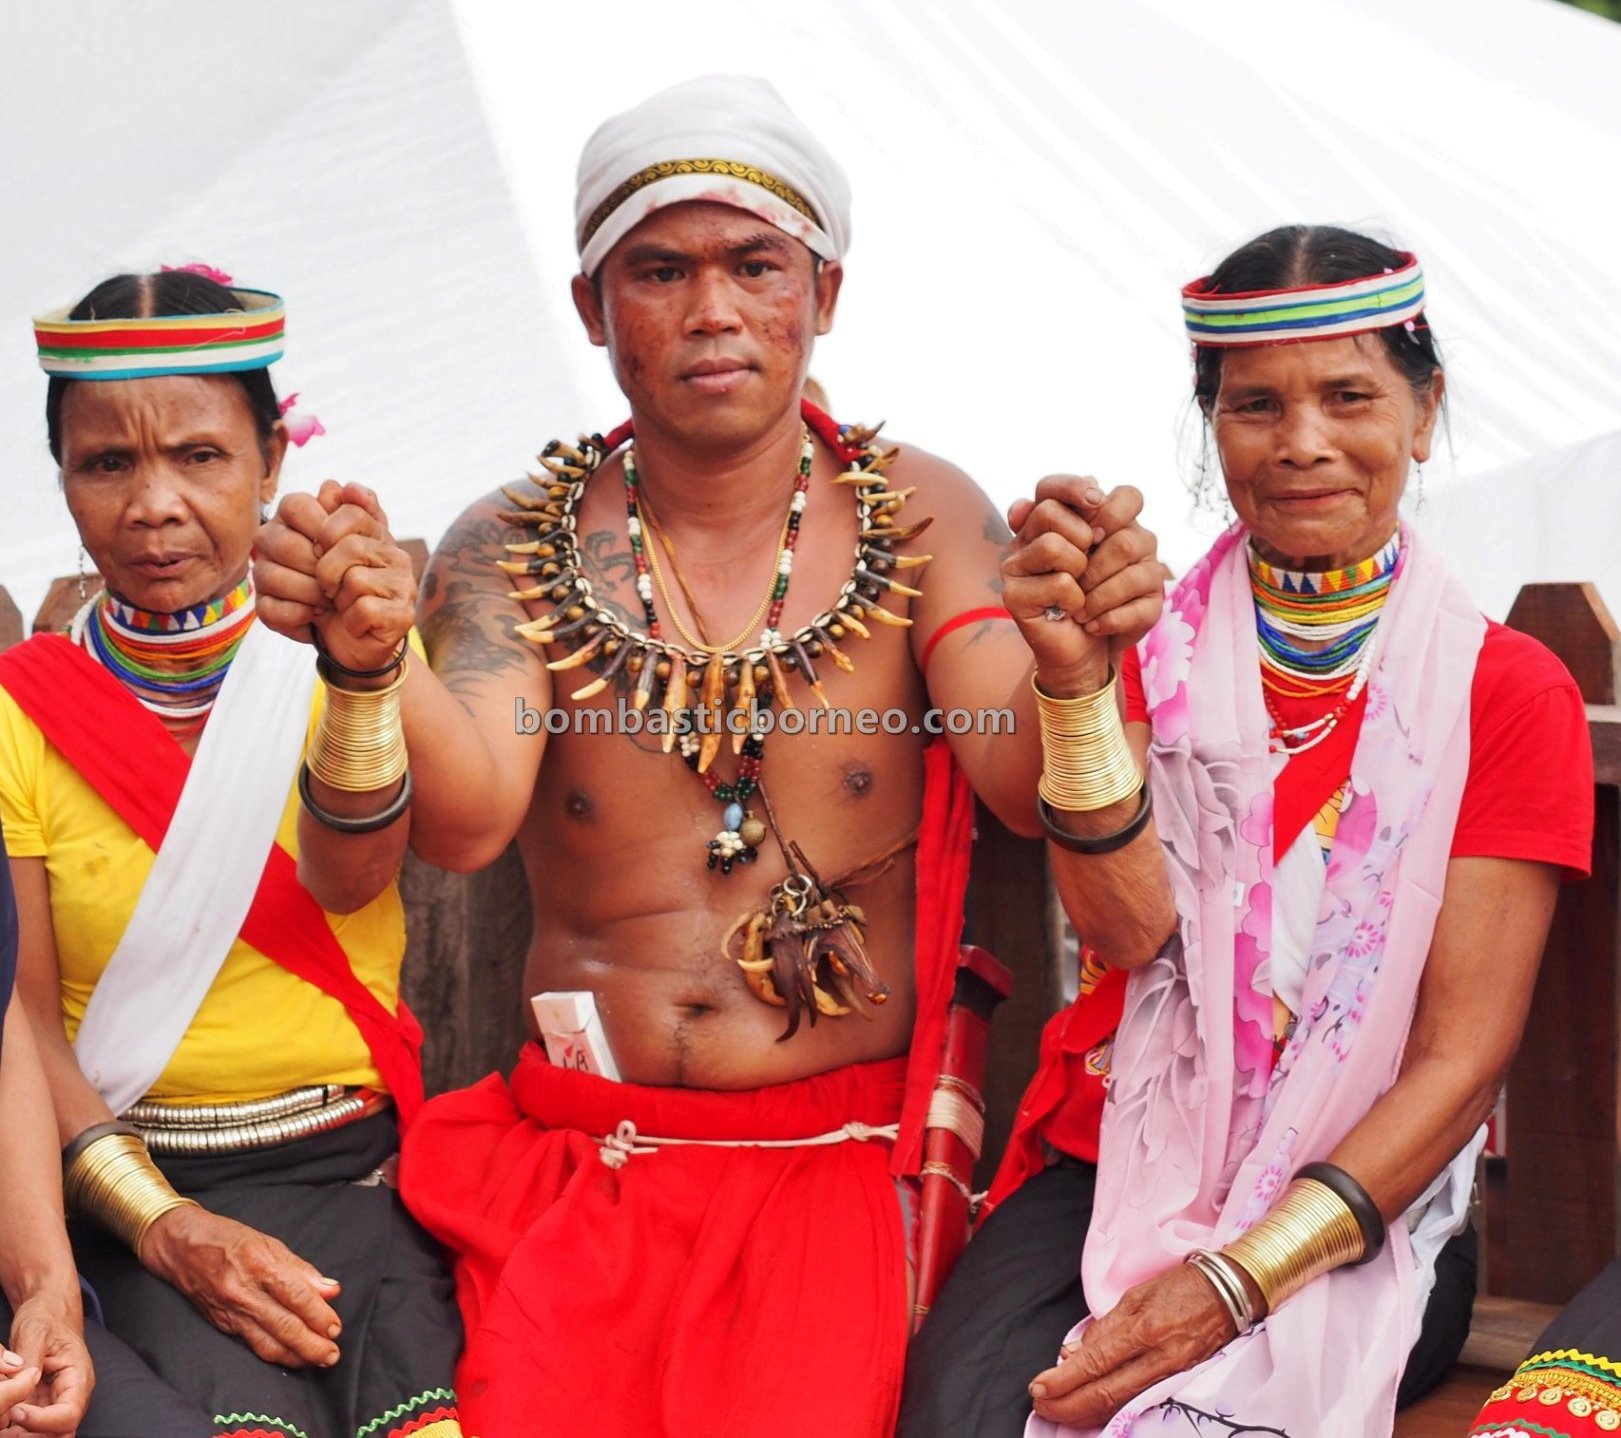 Gumbang Village, Gawai Serumpun, Dayak Bidayuh, paddy harvest festival, authentic, indigenous, Borneo, Kuching, Sarawak, West Kalimantan, budaya, copper ring lady, native, Tourism, travel guide, cross border,